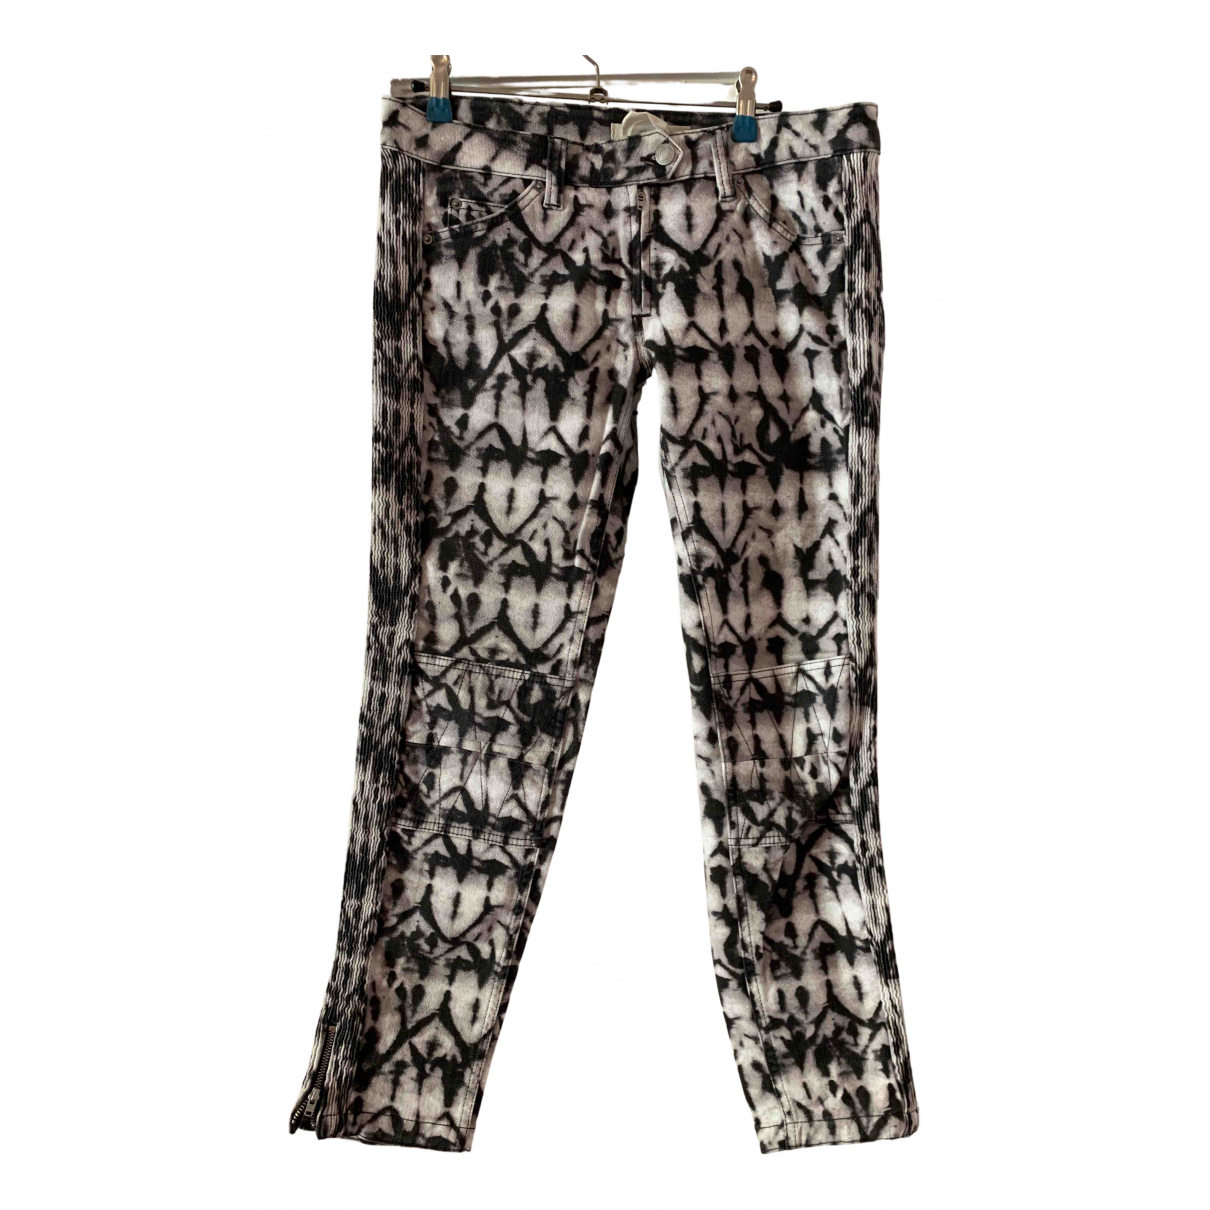 Isabel Marant Pour H&m N White Cotton Trousers for Women 8 US